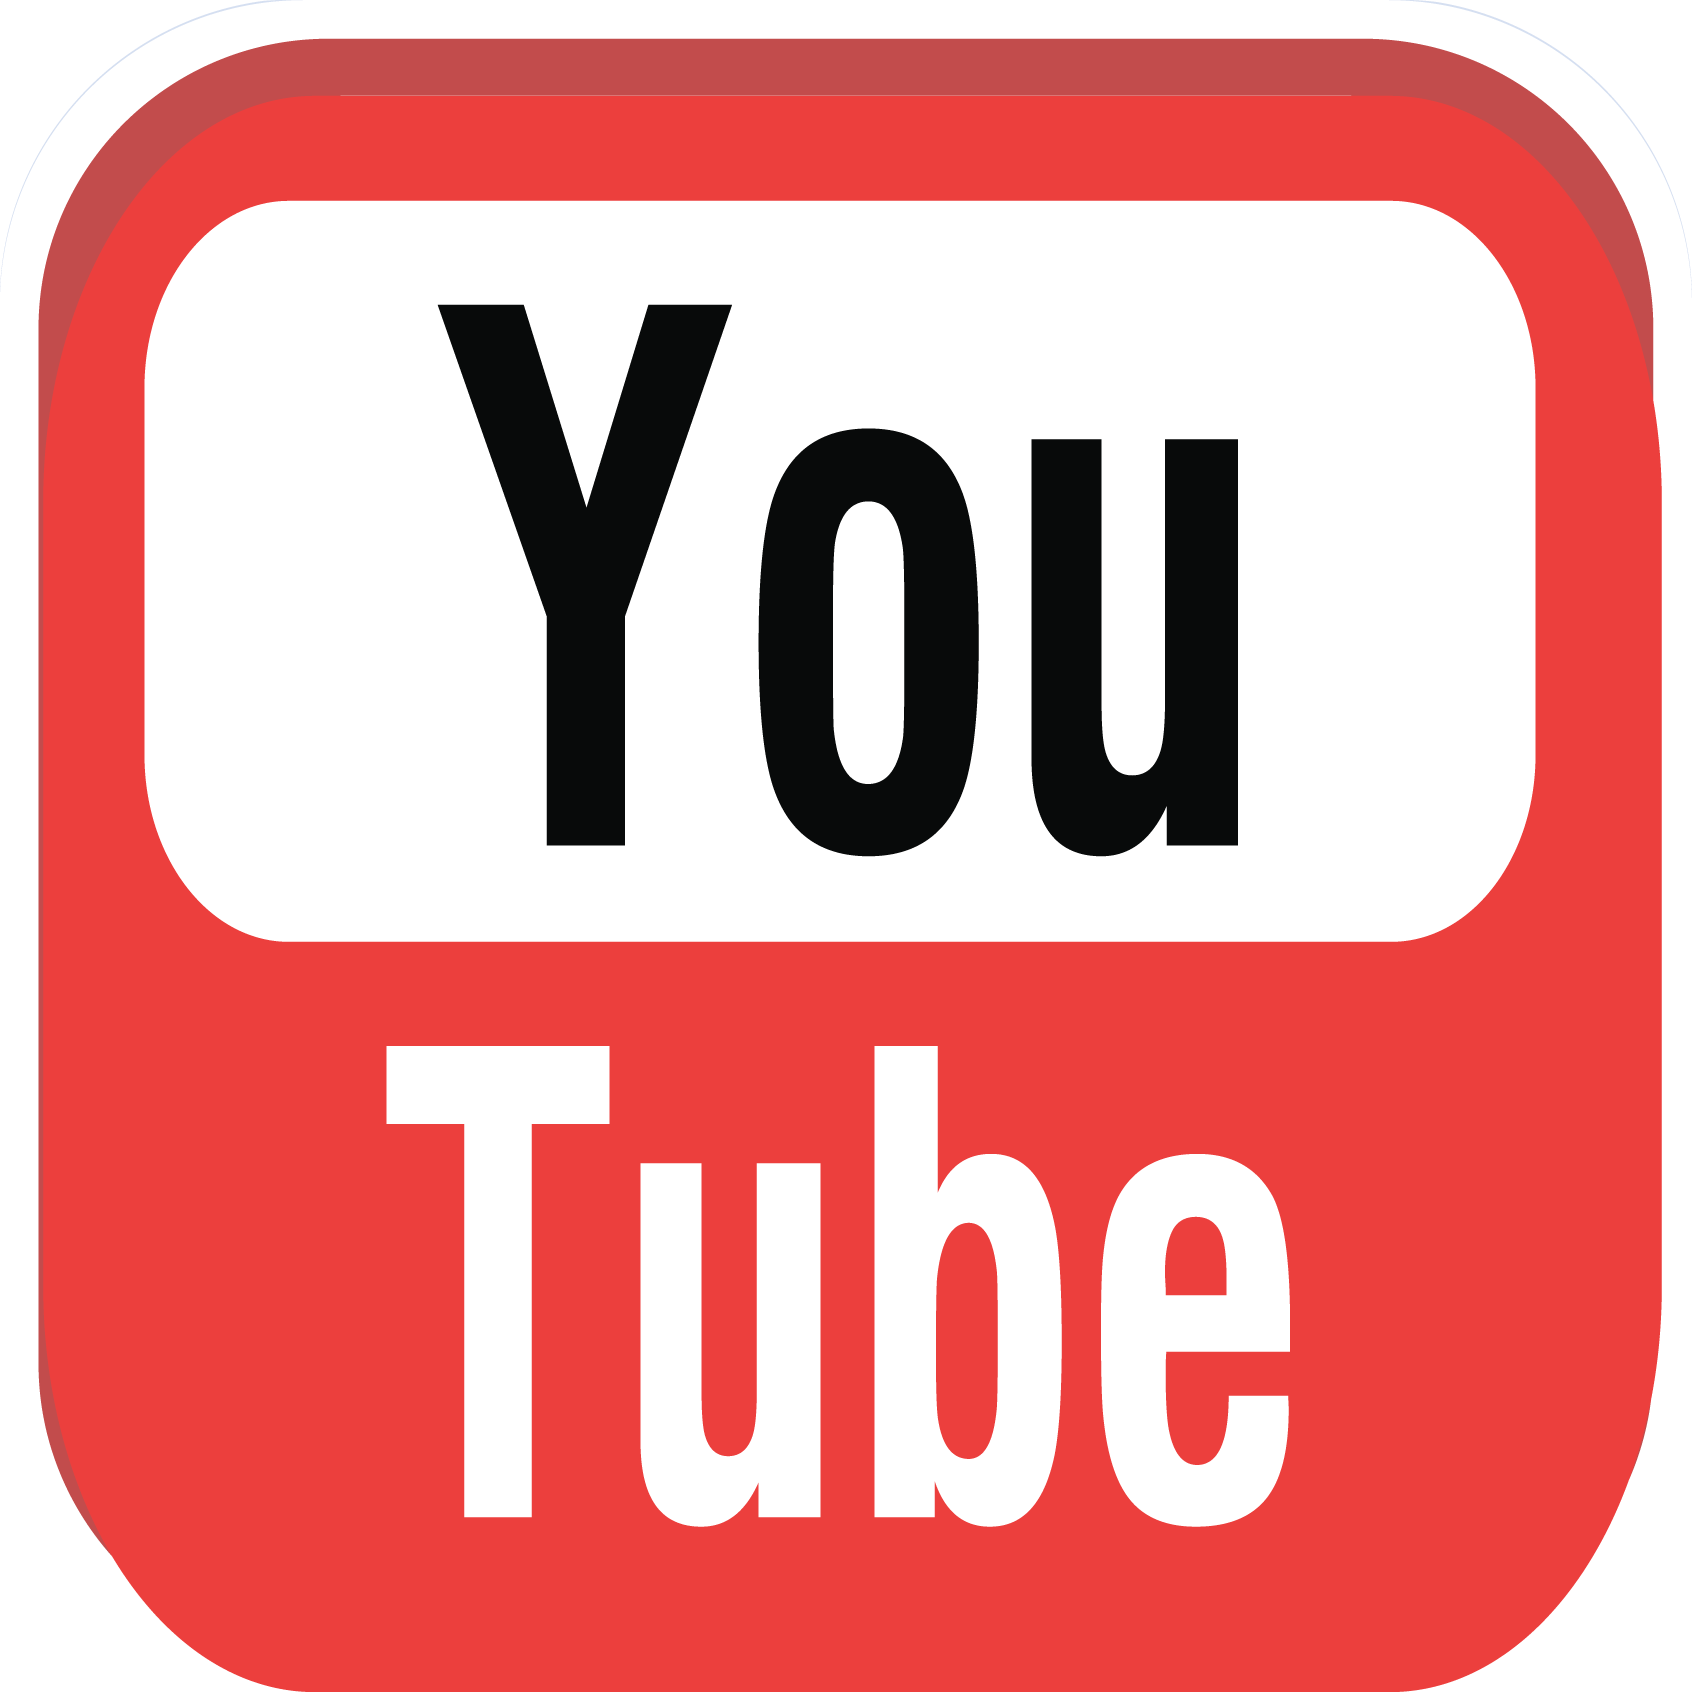 Youtube Download Png PNG Image